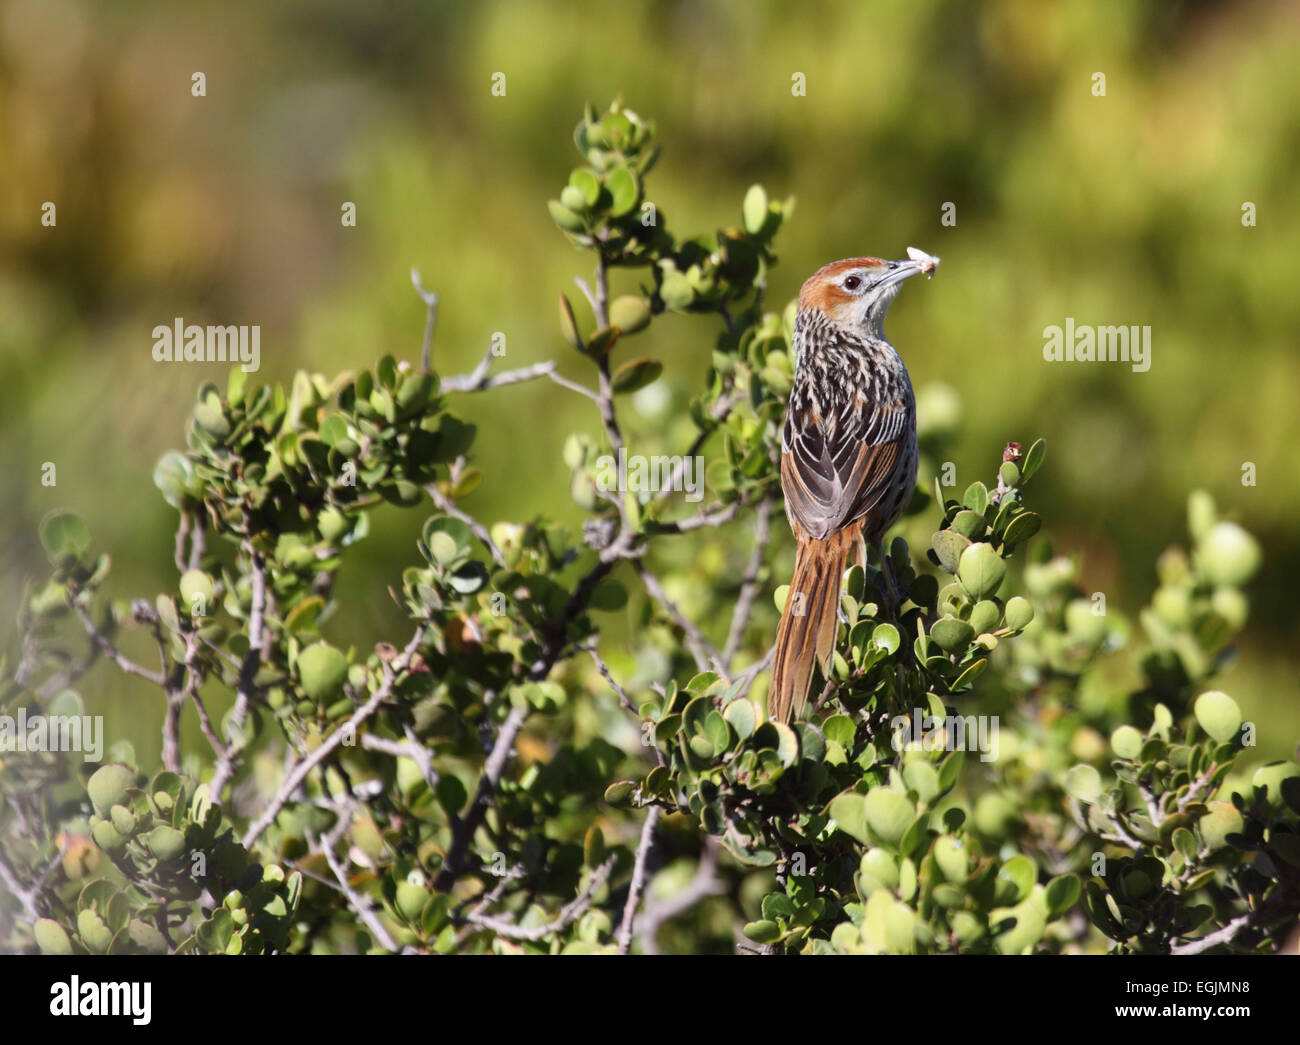 Wailing cisticola with item of food in bill in shrub on rocky hillside in South Africa - Stock Image